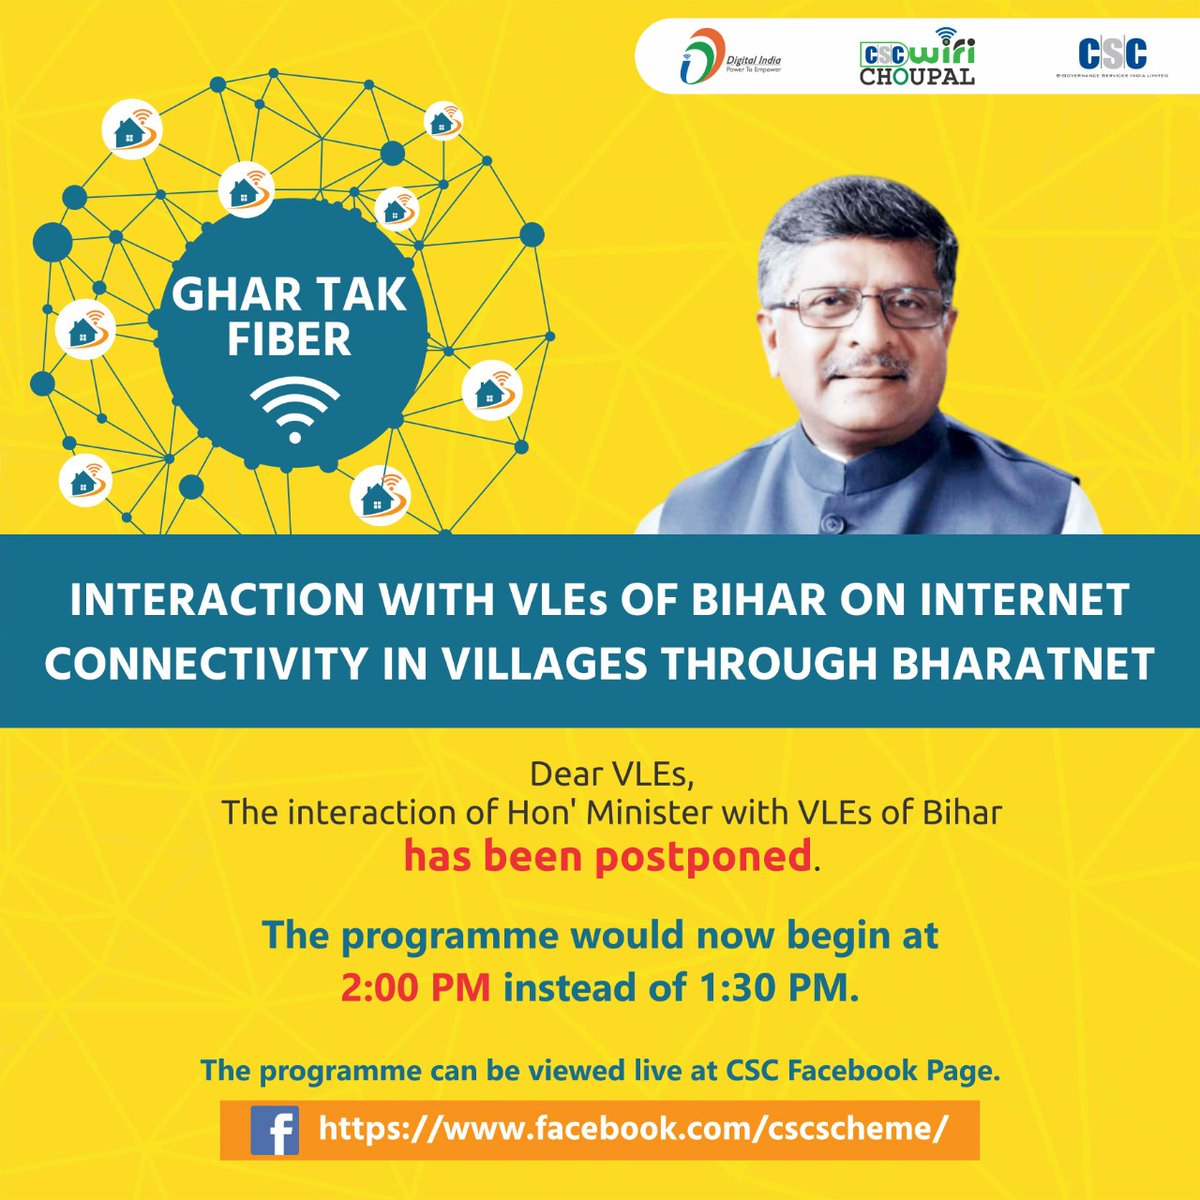 Hon' Minister of Electronics & IT, Communications, Law & Justice, Shri @rsprasad will be interacting with the VLEs of #Bihar on Internet Connectivity in Villages through #BharatNet.  Watch it LIVE on #CSC FB Page TODAY at 2 PM.  #GHARTAKFIBER #NayeBiharKaNirmaan #DigitalBihar https://t.co/YXQMPoayHc